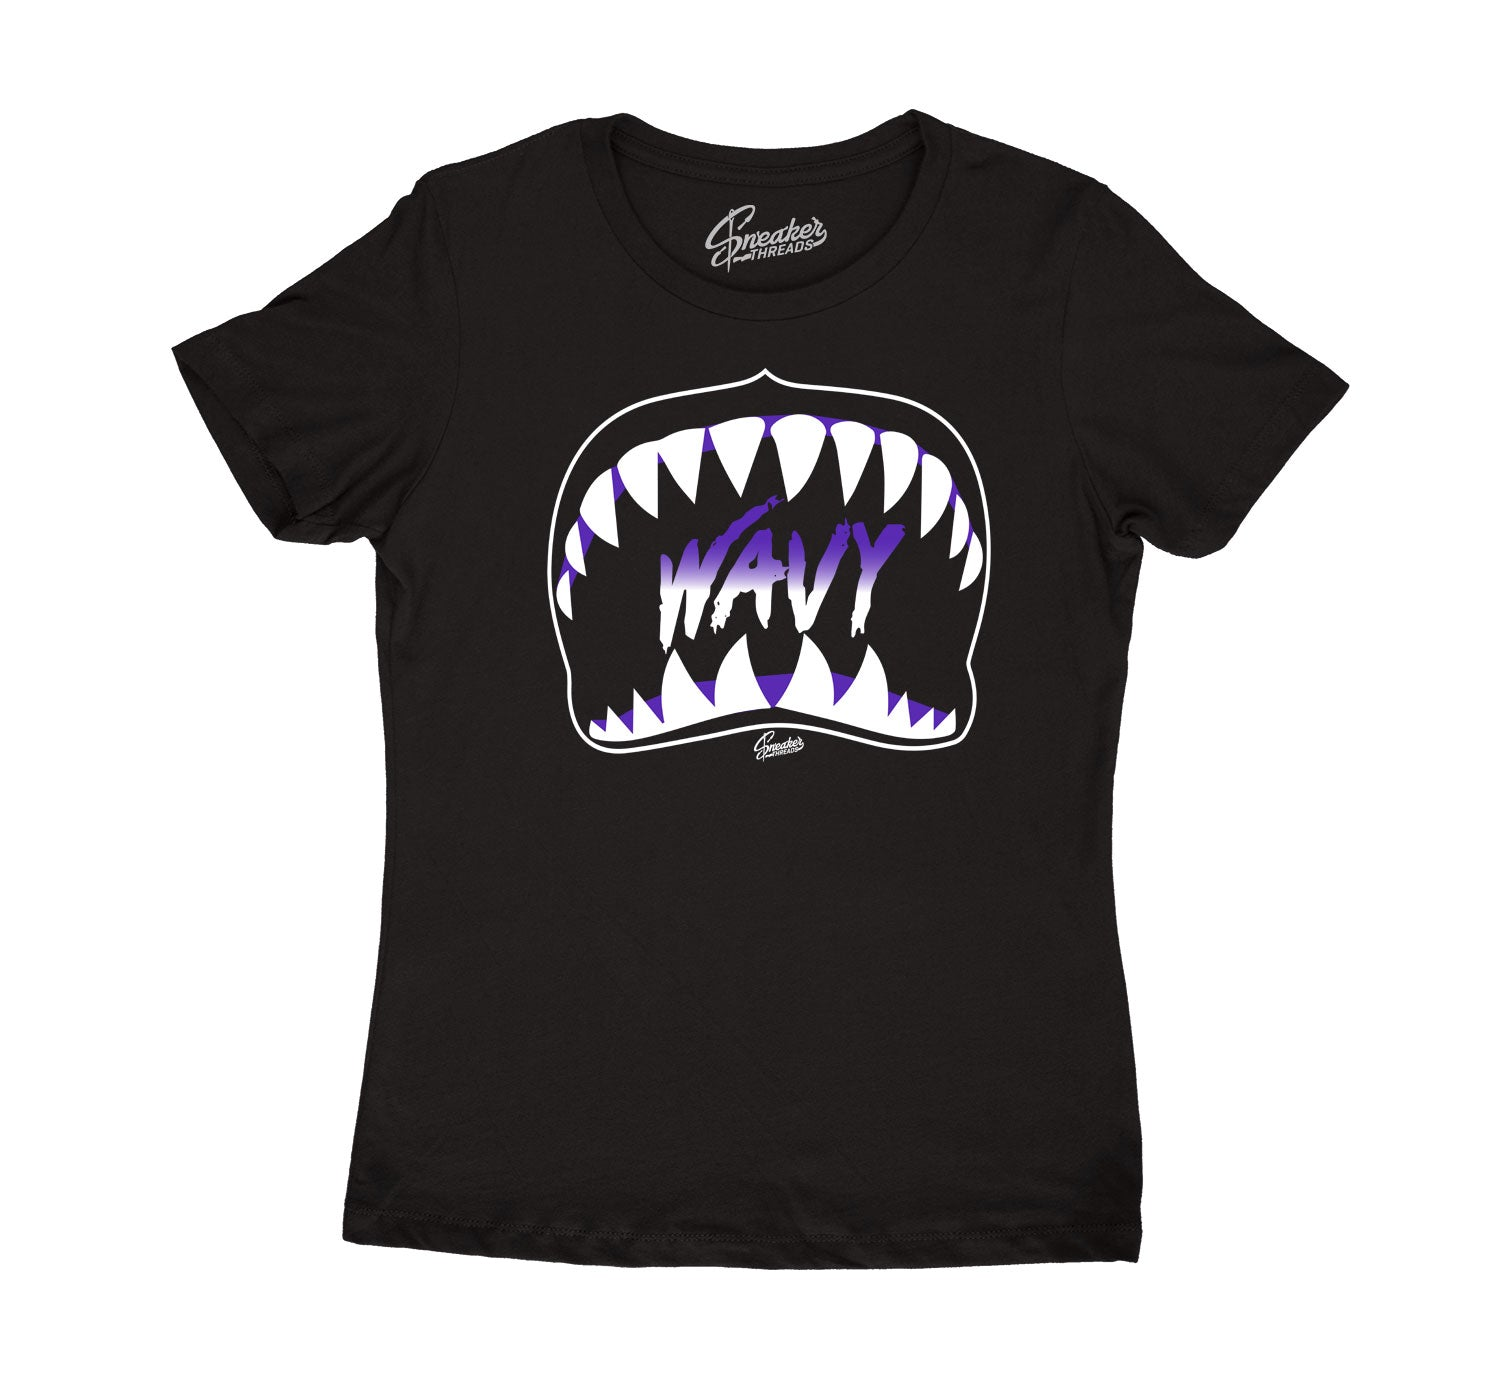 Womens Dark Concord 12 Shirt - Wavy - Black